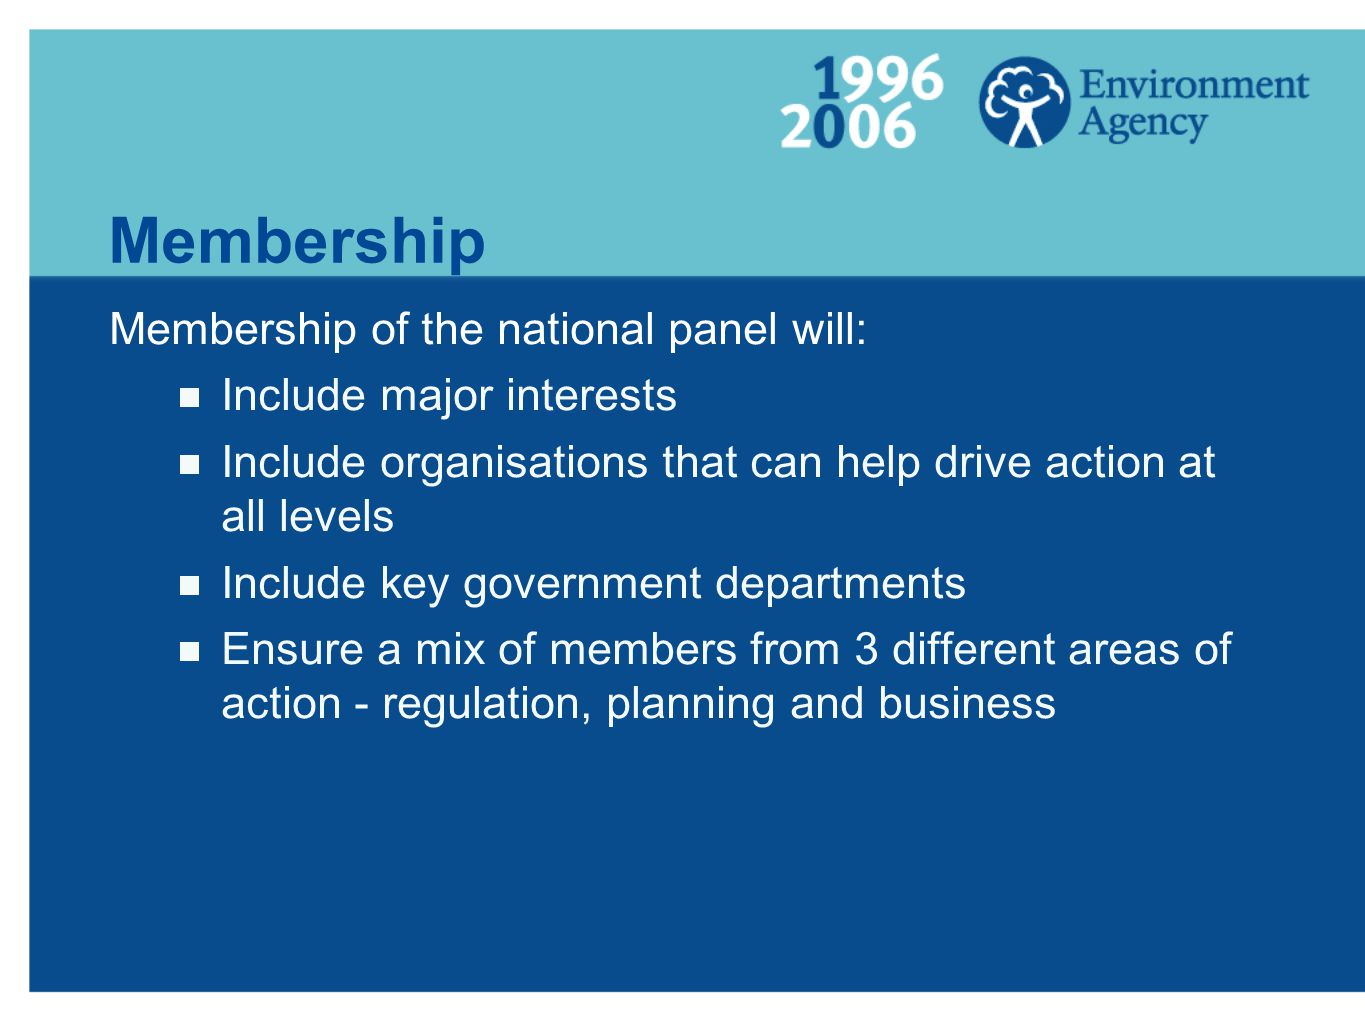 Membership Membership of the national panel will: Include major interests Include organisations that can help drive action at all levels Include key government departments Ensure a mix of members from 3 different areas of action - regulation, planning and business